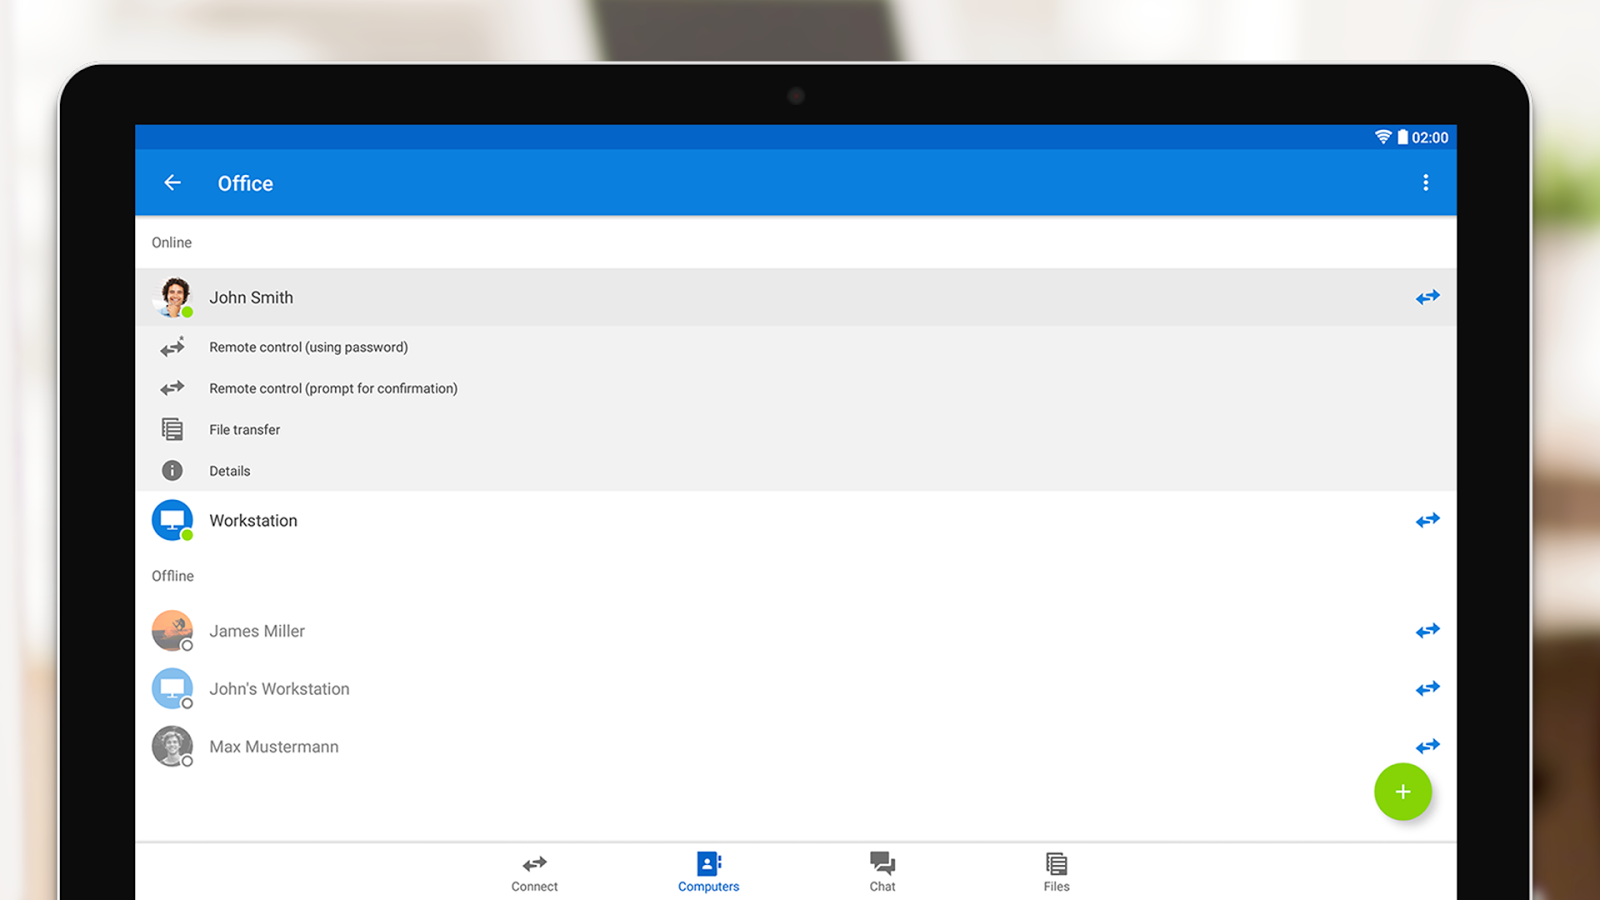 teamviewer for remote control 13 0 8183 apk download android